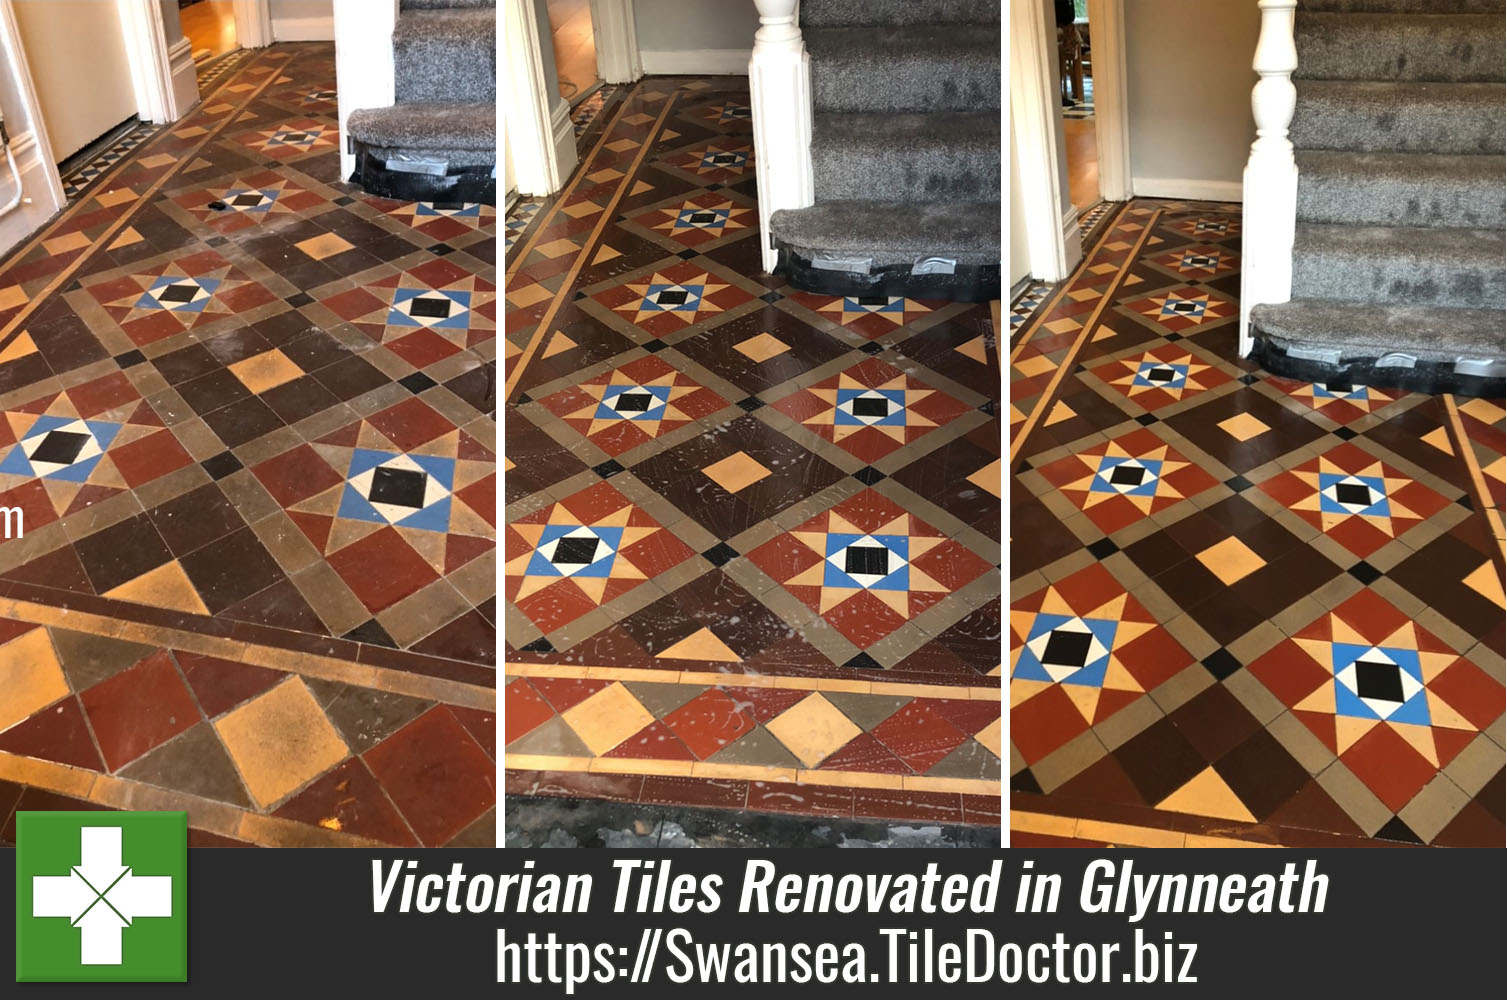 Renovation of Victorian floor in Glynneath